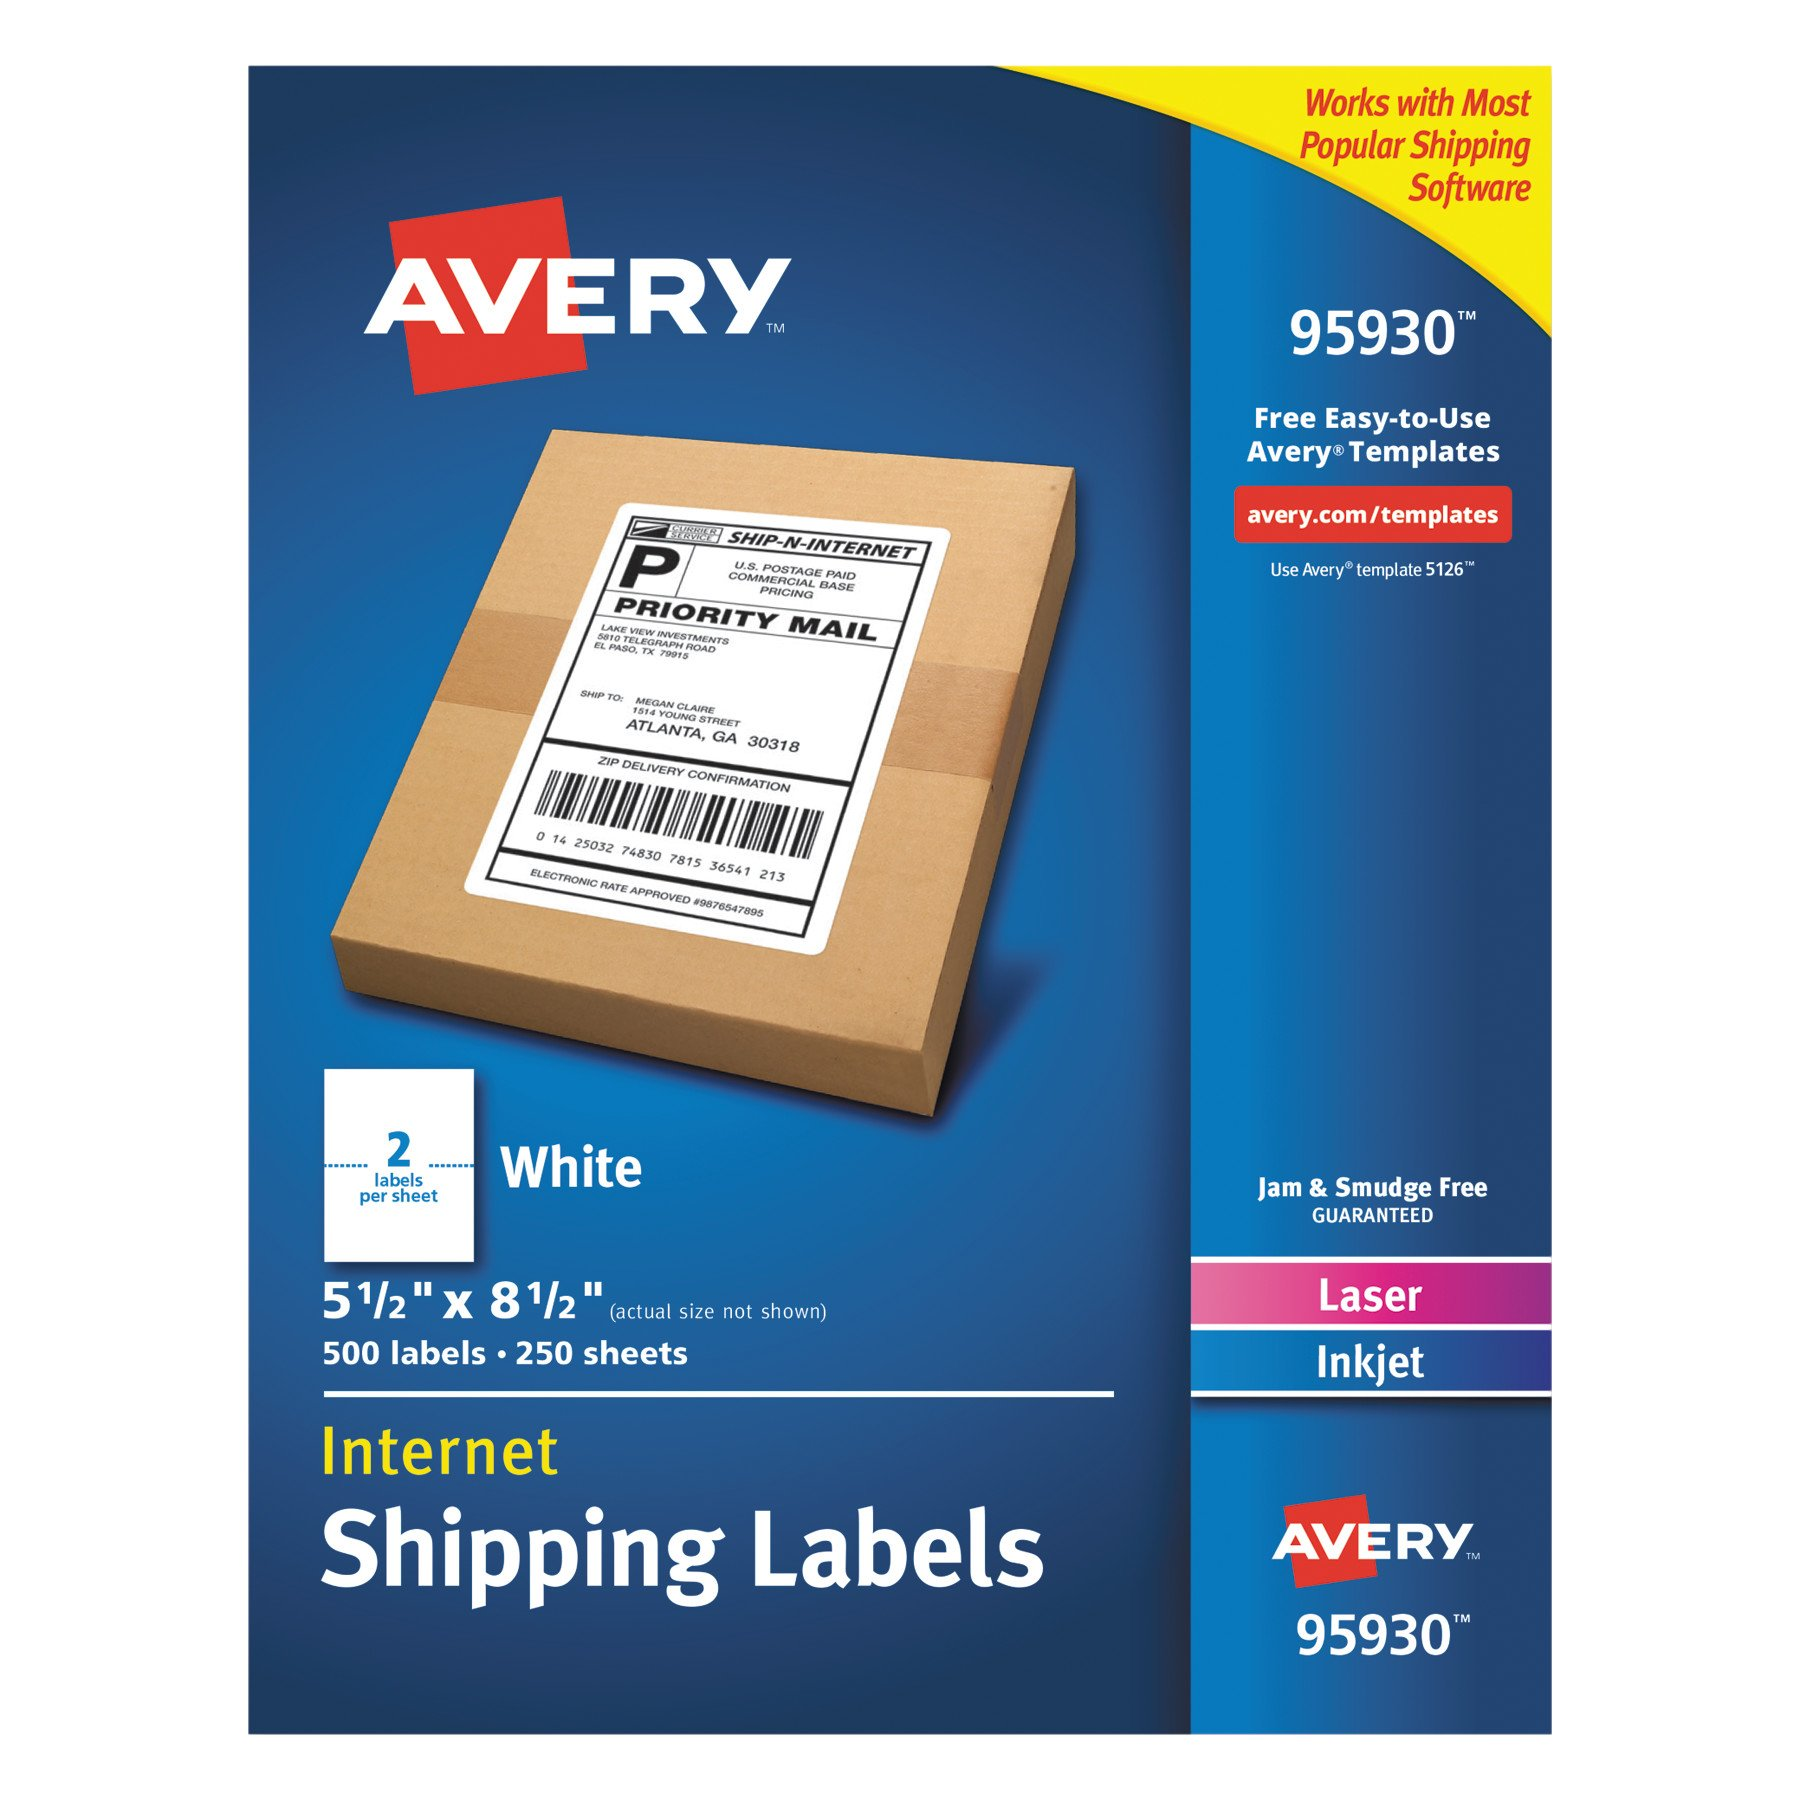 Avery Shipping Address Labels, Laser & Inkjet Printers, 500 Labels, Half Sheet Labels, Permanent Adhesive (95930), White by AVERY